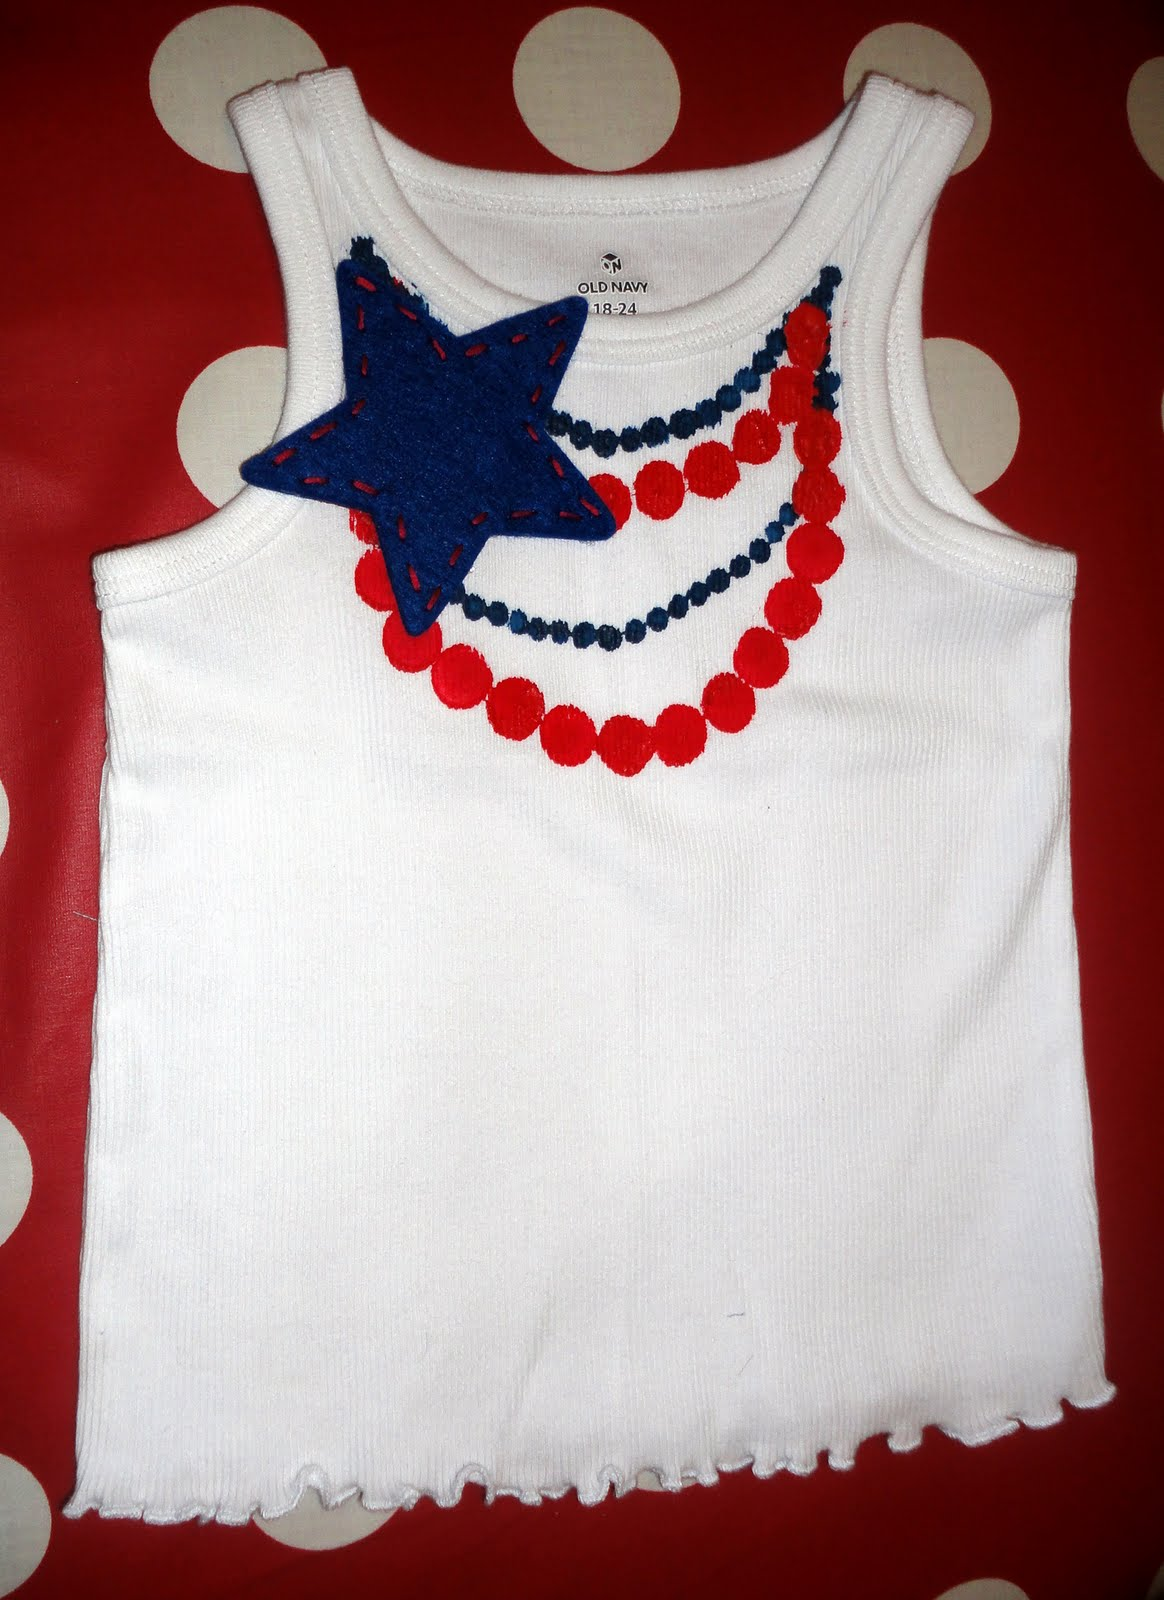 4th of july shirts nordstrom